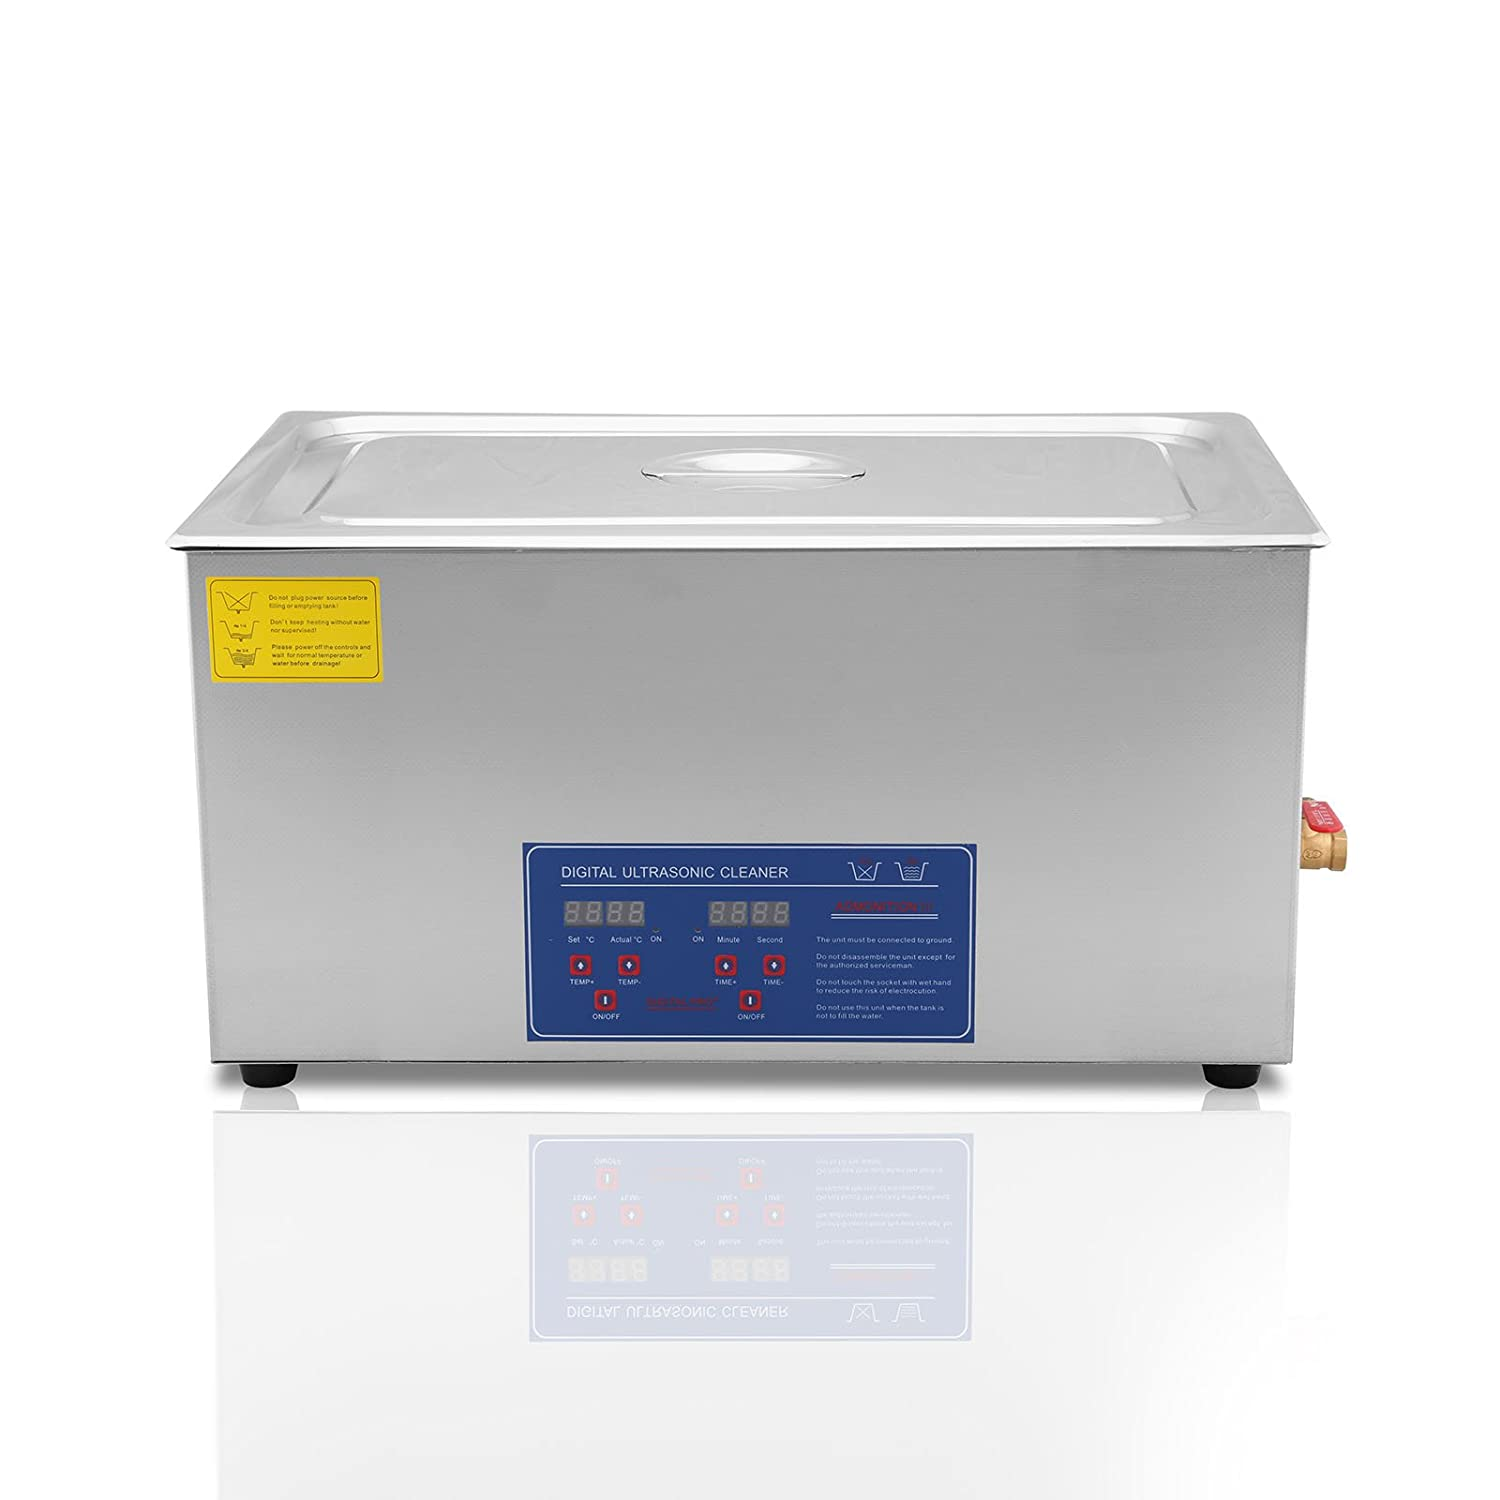 VEVOR Commercial Ultrasonic Cleaner 22L Ultrasonic Cleaner for Cleaning Eyeglasses Rings Large Capacity Heated Ultrasonic Cleaner